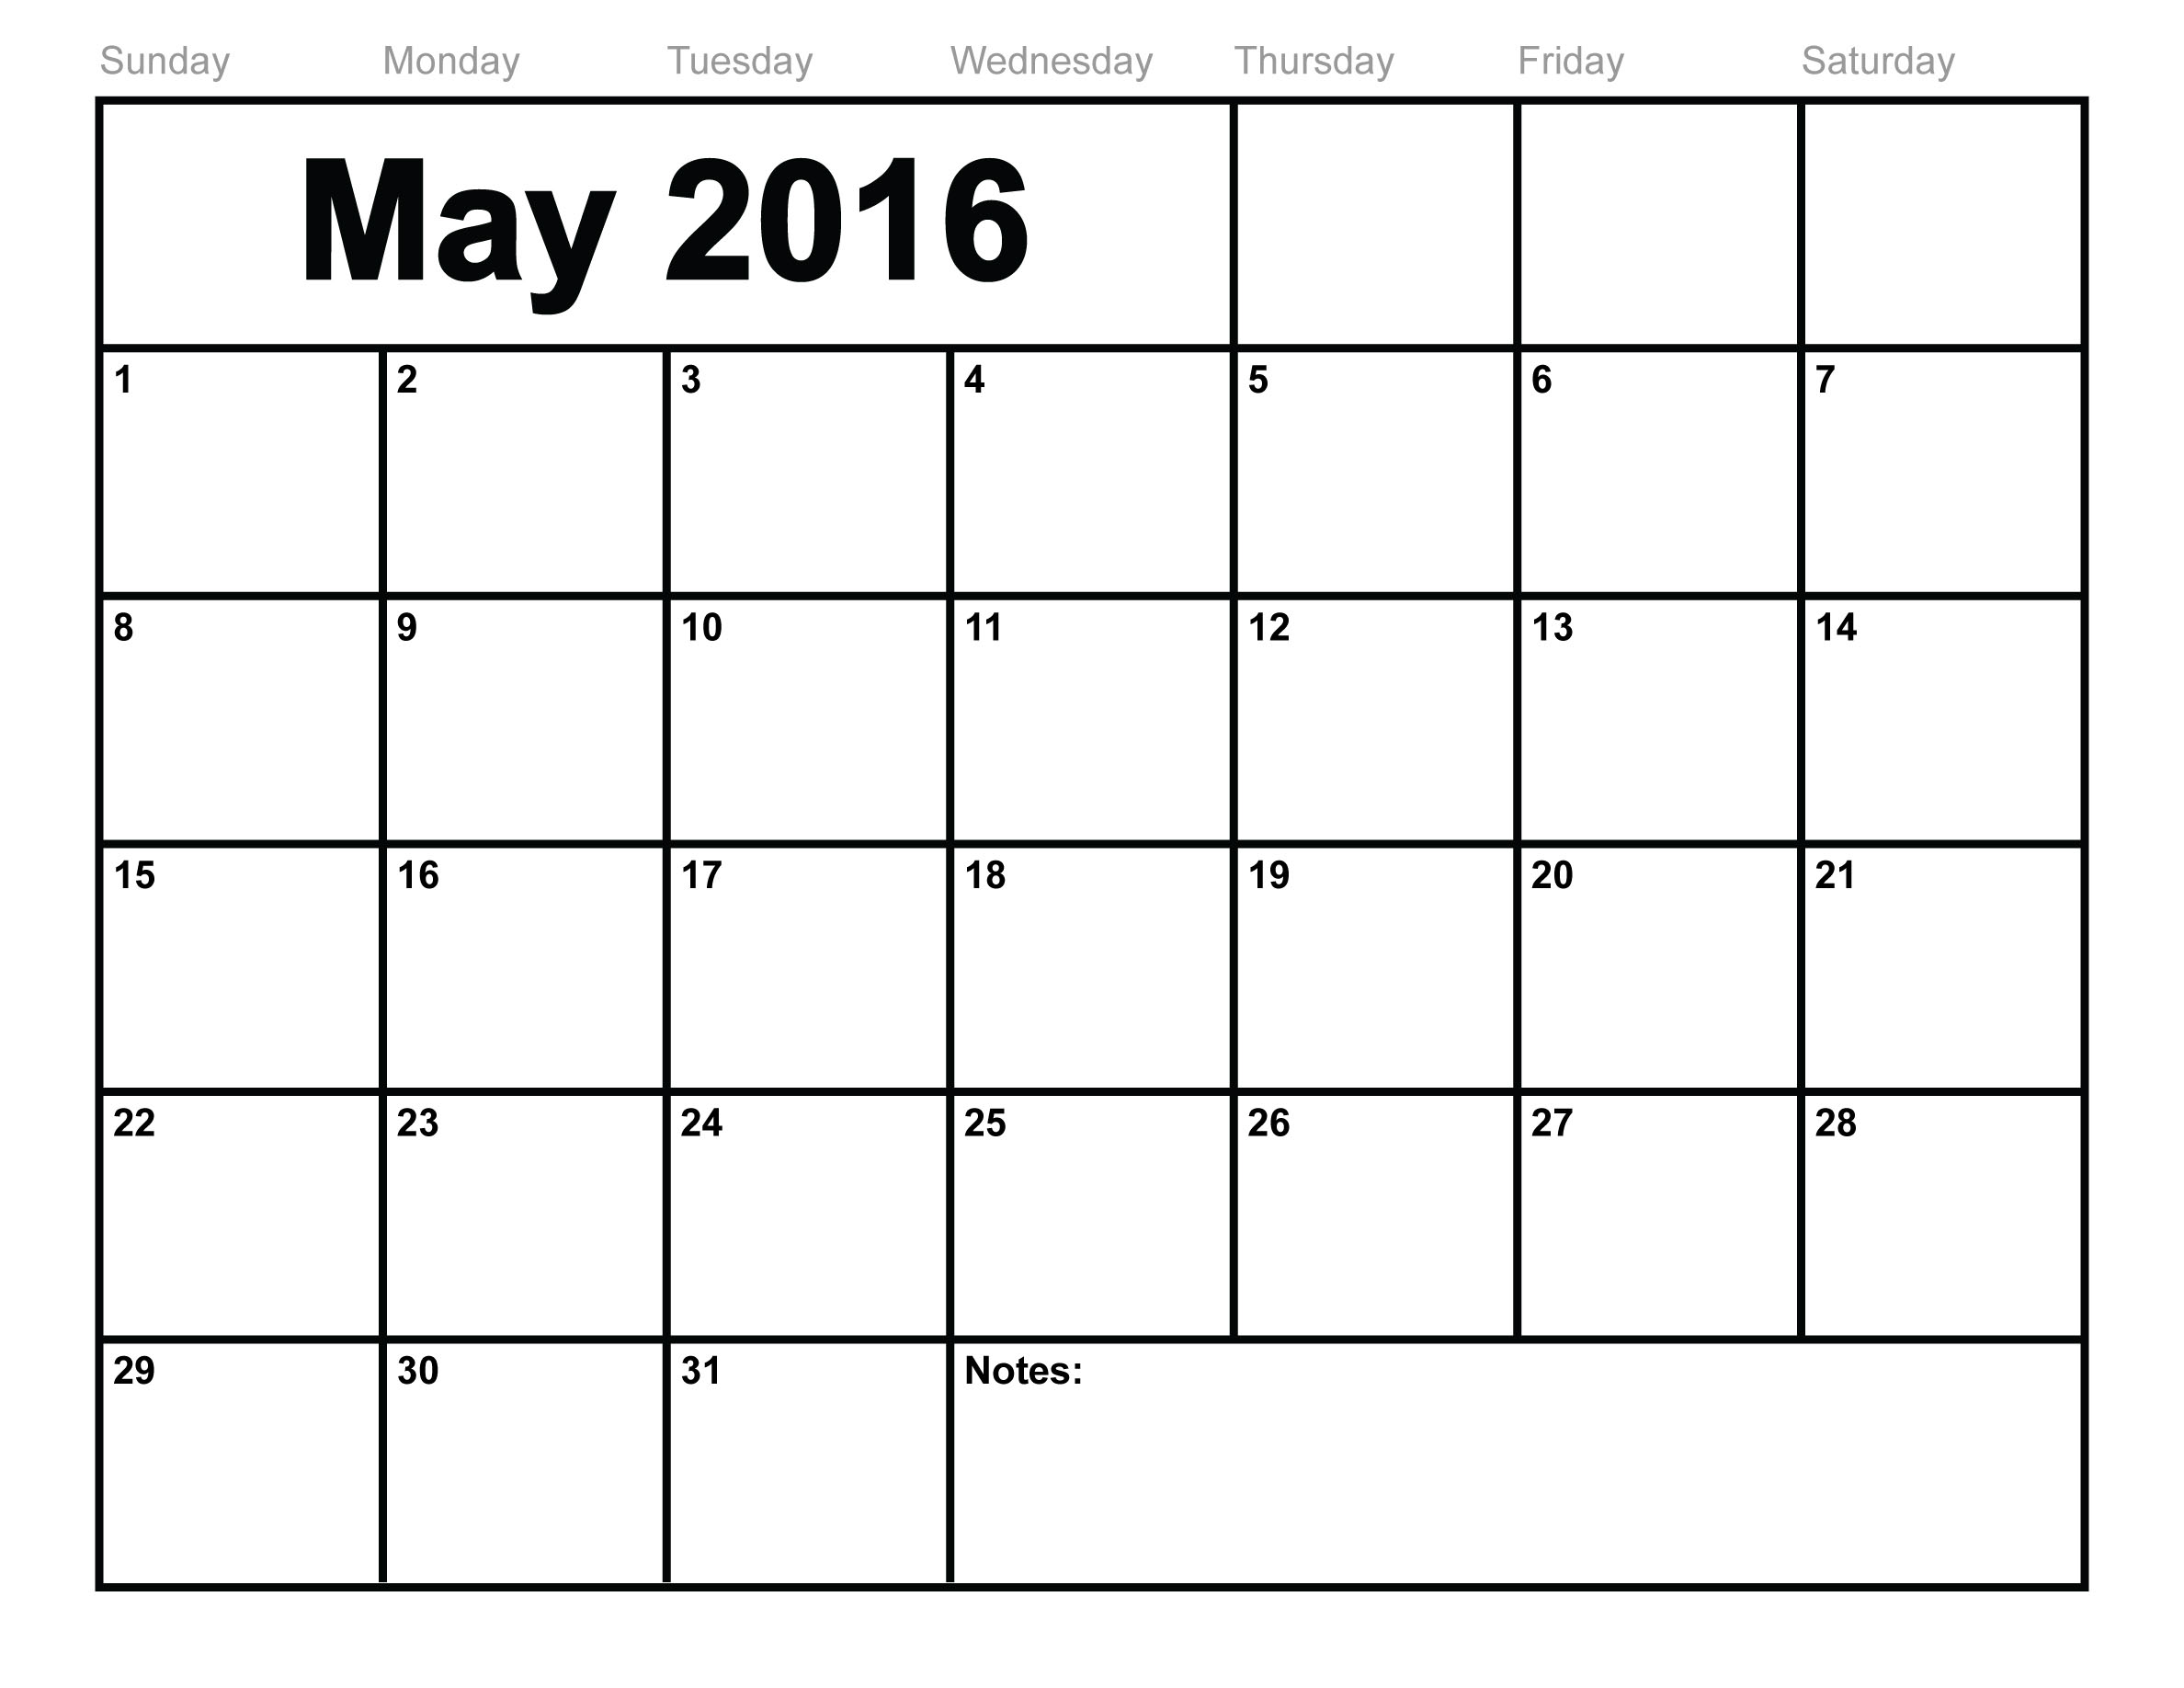 may-monthly-calendar-2016-uk-may-2016-calendar-uk-2-HEvJnp.jpg